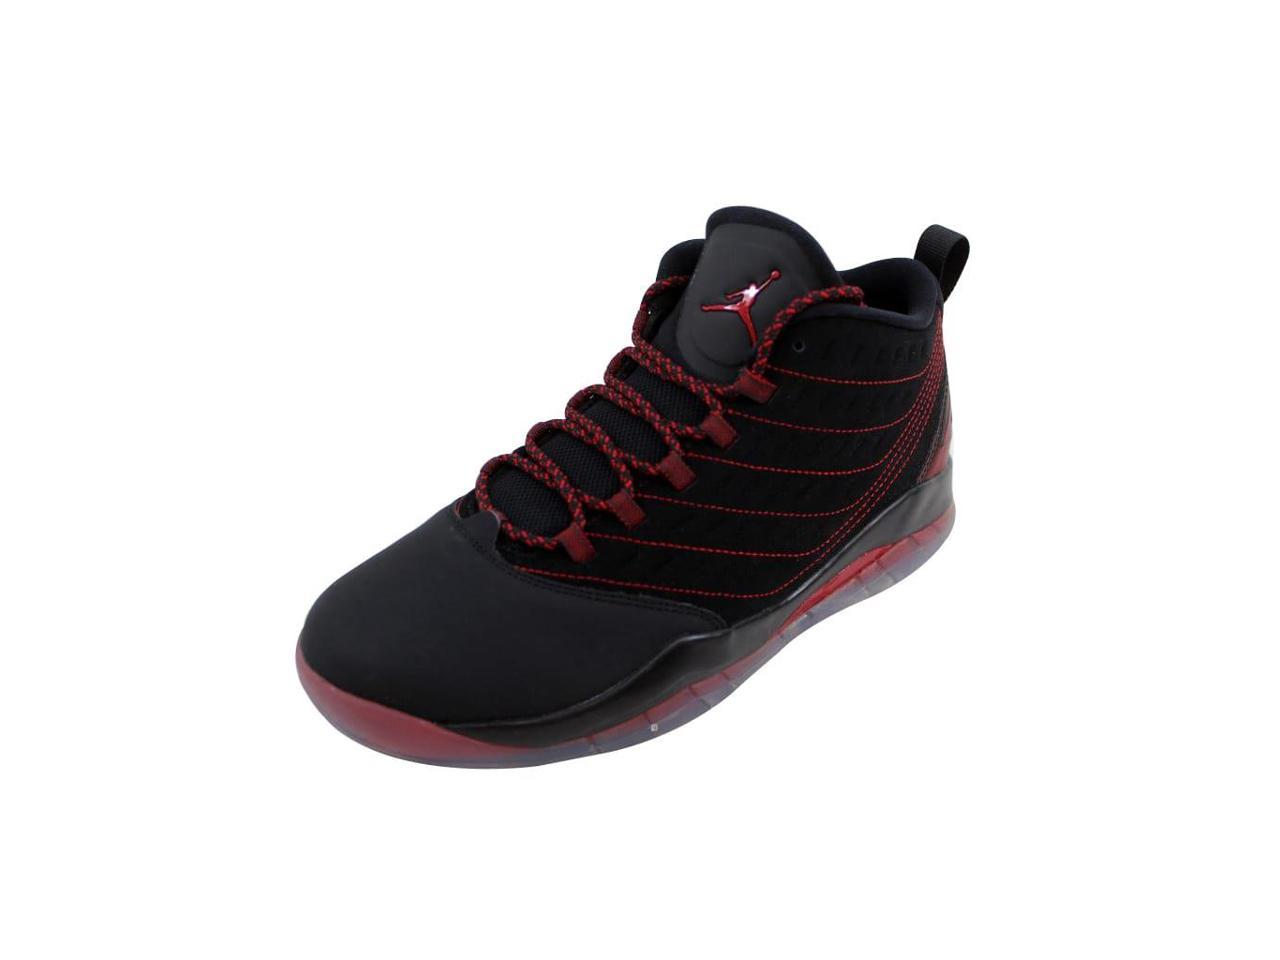 Nike Grade-School Air 693361-060 Jordan Velocity BG Black/Gym Red 693361-060 Air Size 7Y 047642